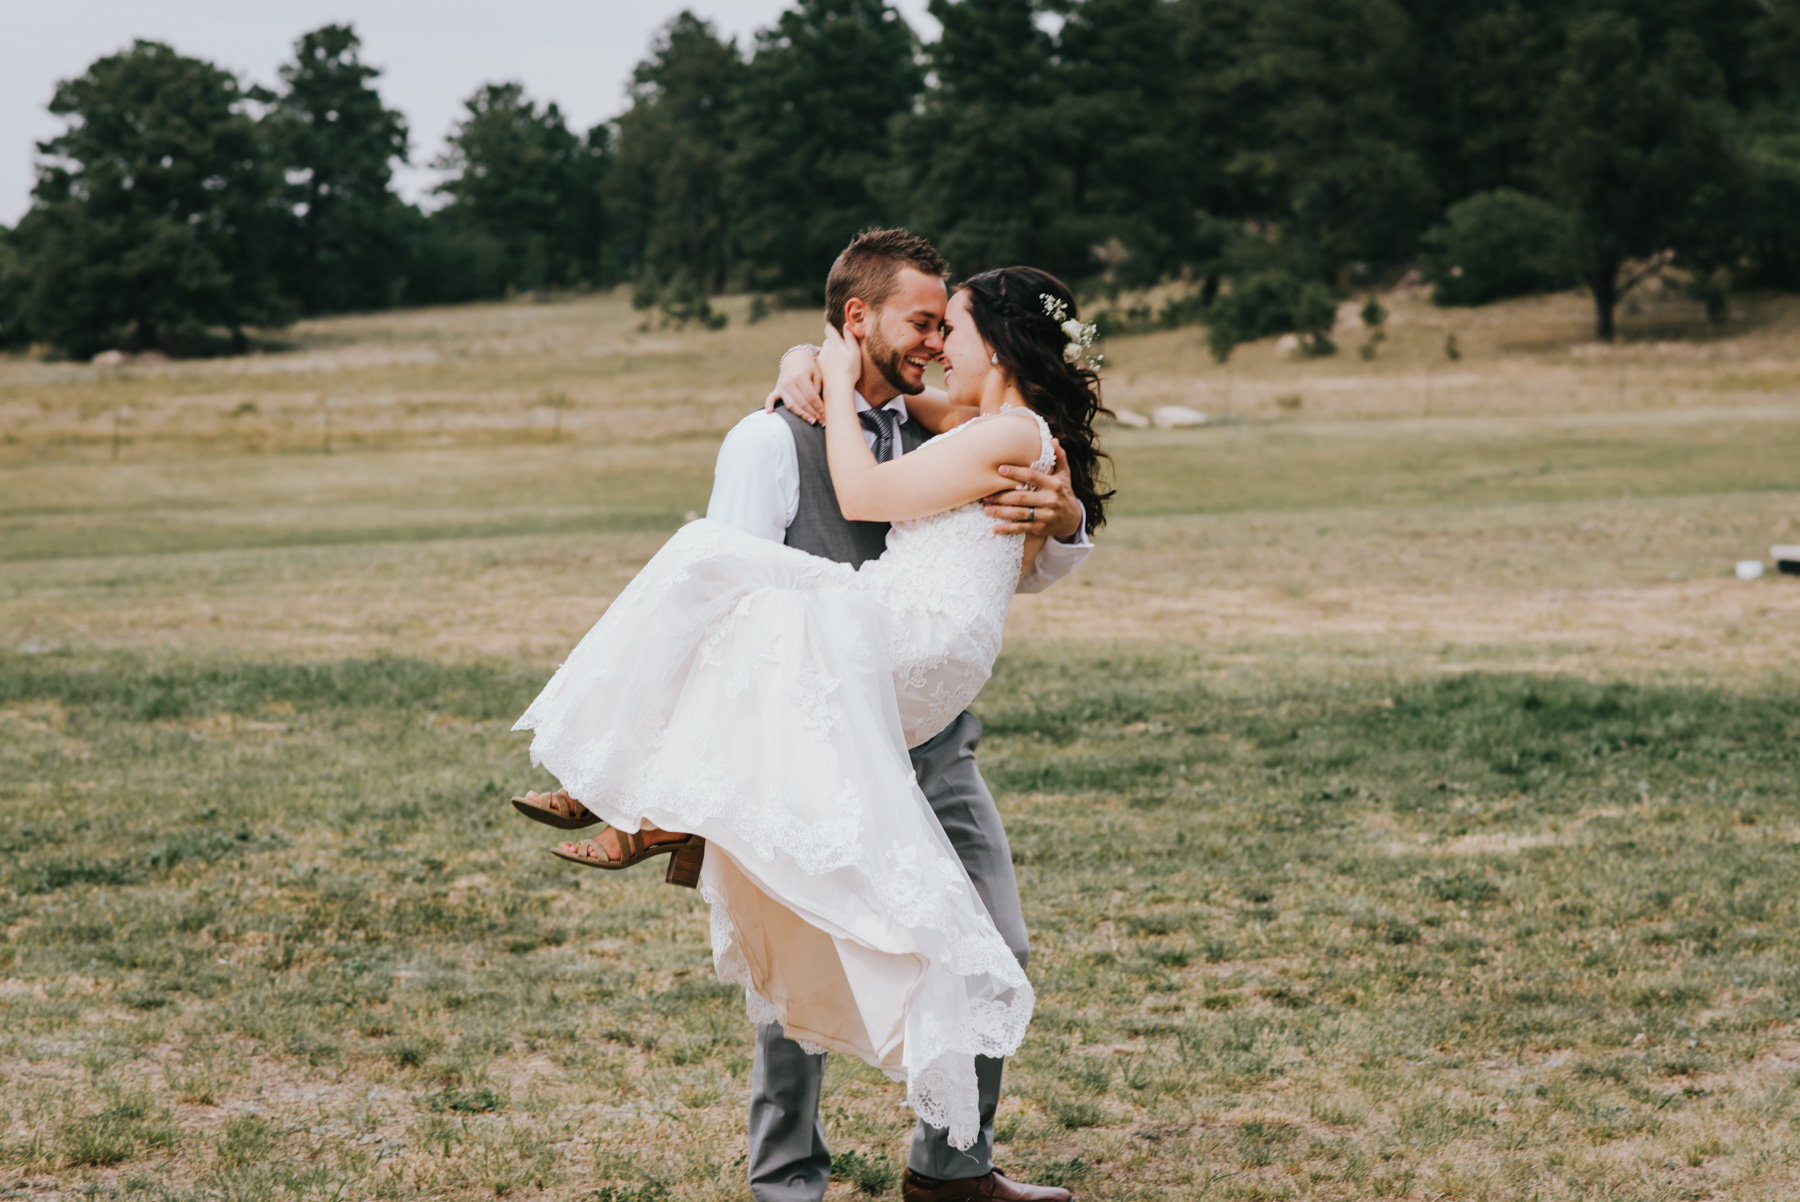 Lynsey is in Chris's arms here as they spin around on their wedding day at the Flying Horse Ranch in Colorado Springs. Copyright: Teresa Woodhull Photography